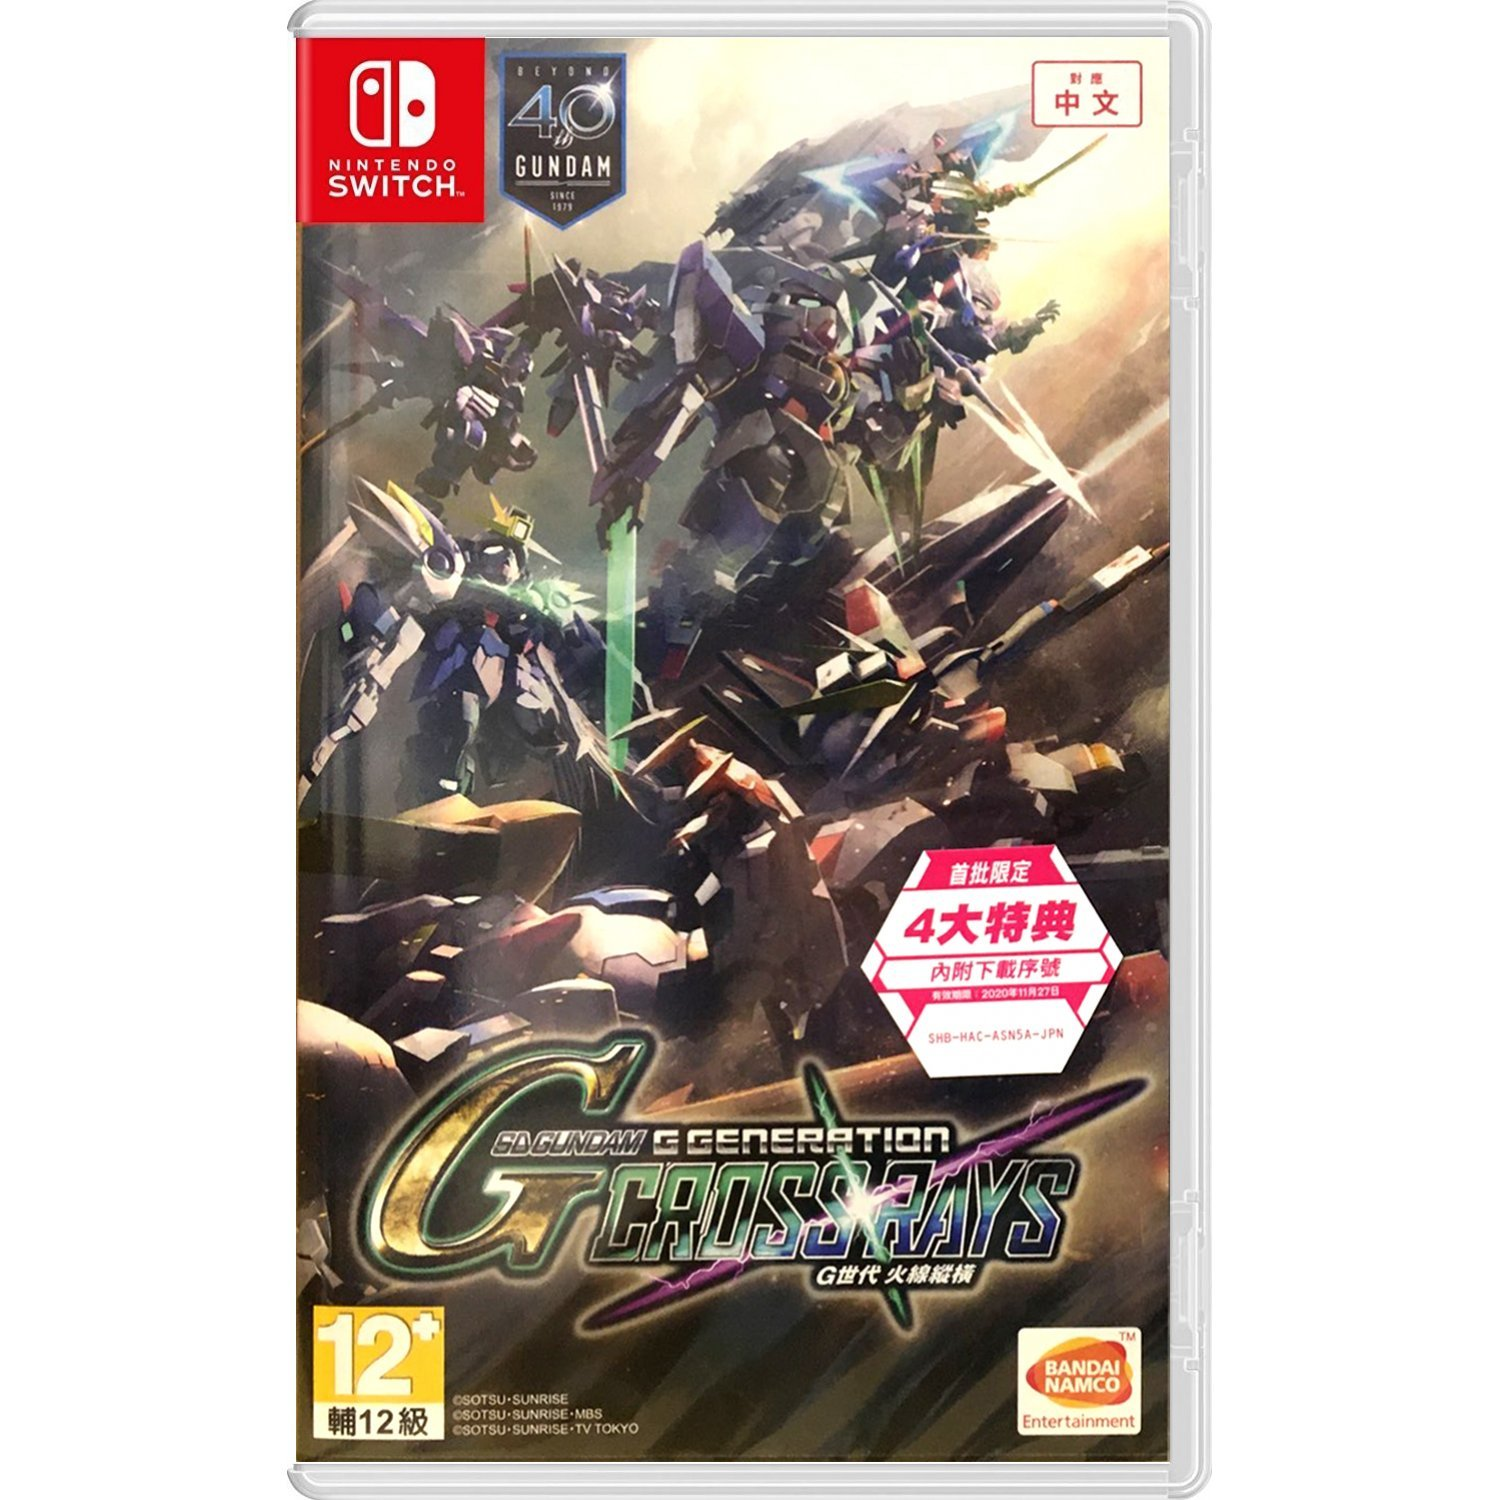 sd-gundam-g-generation-cross-rays-chinese-cover-multilanguage-600785.11.jpg